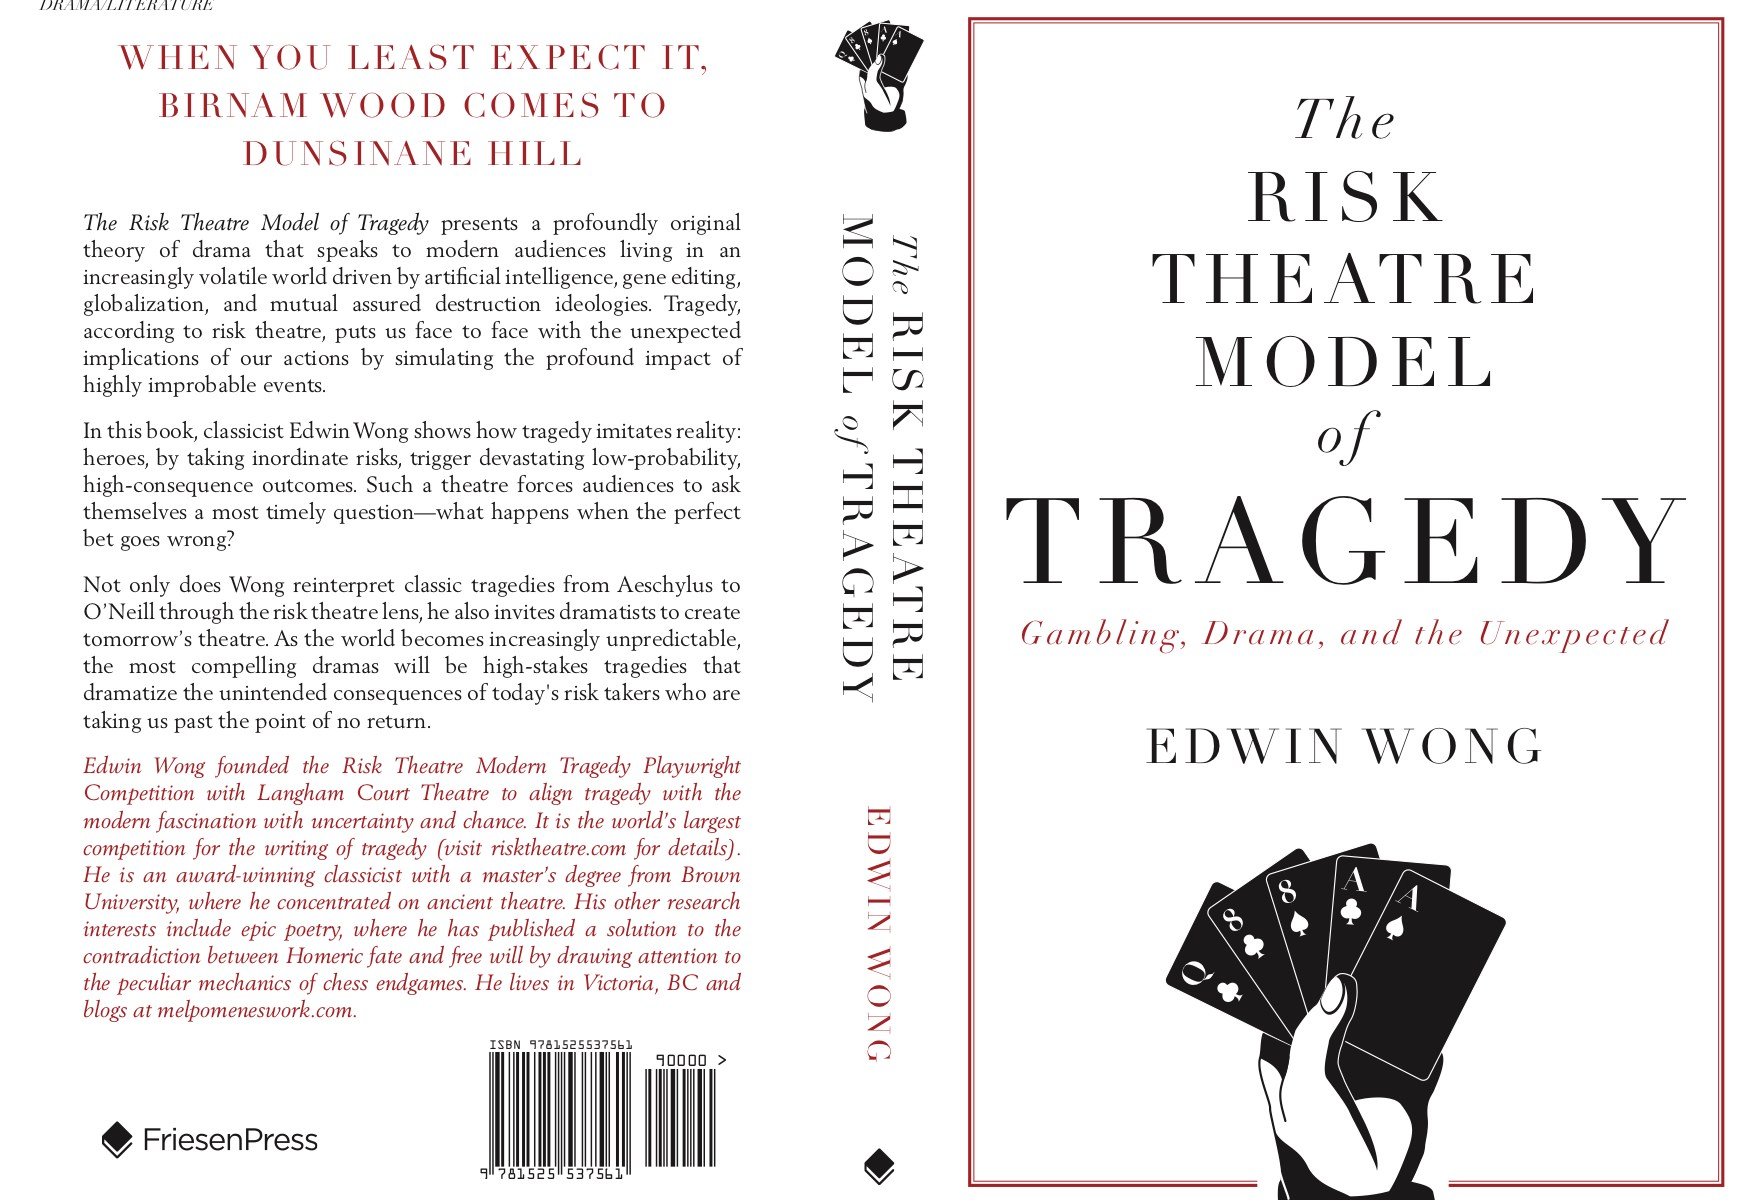 The Risk Theatre Model of Tragedy: Cover Image